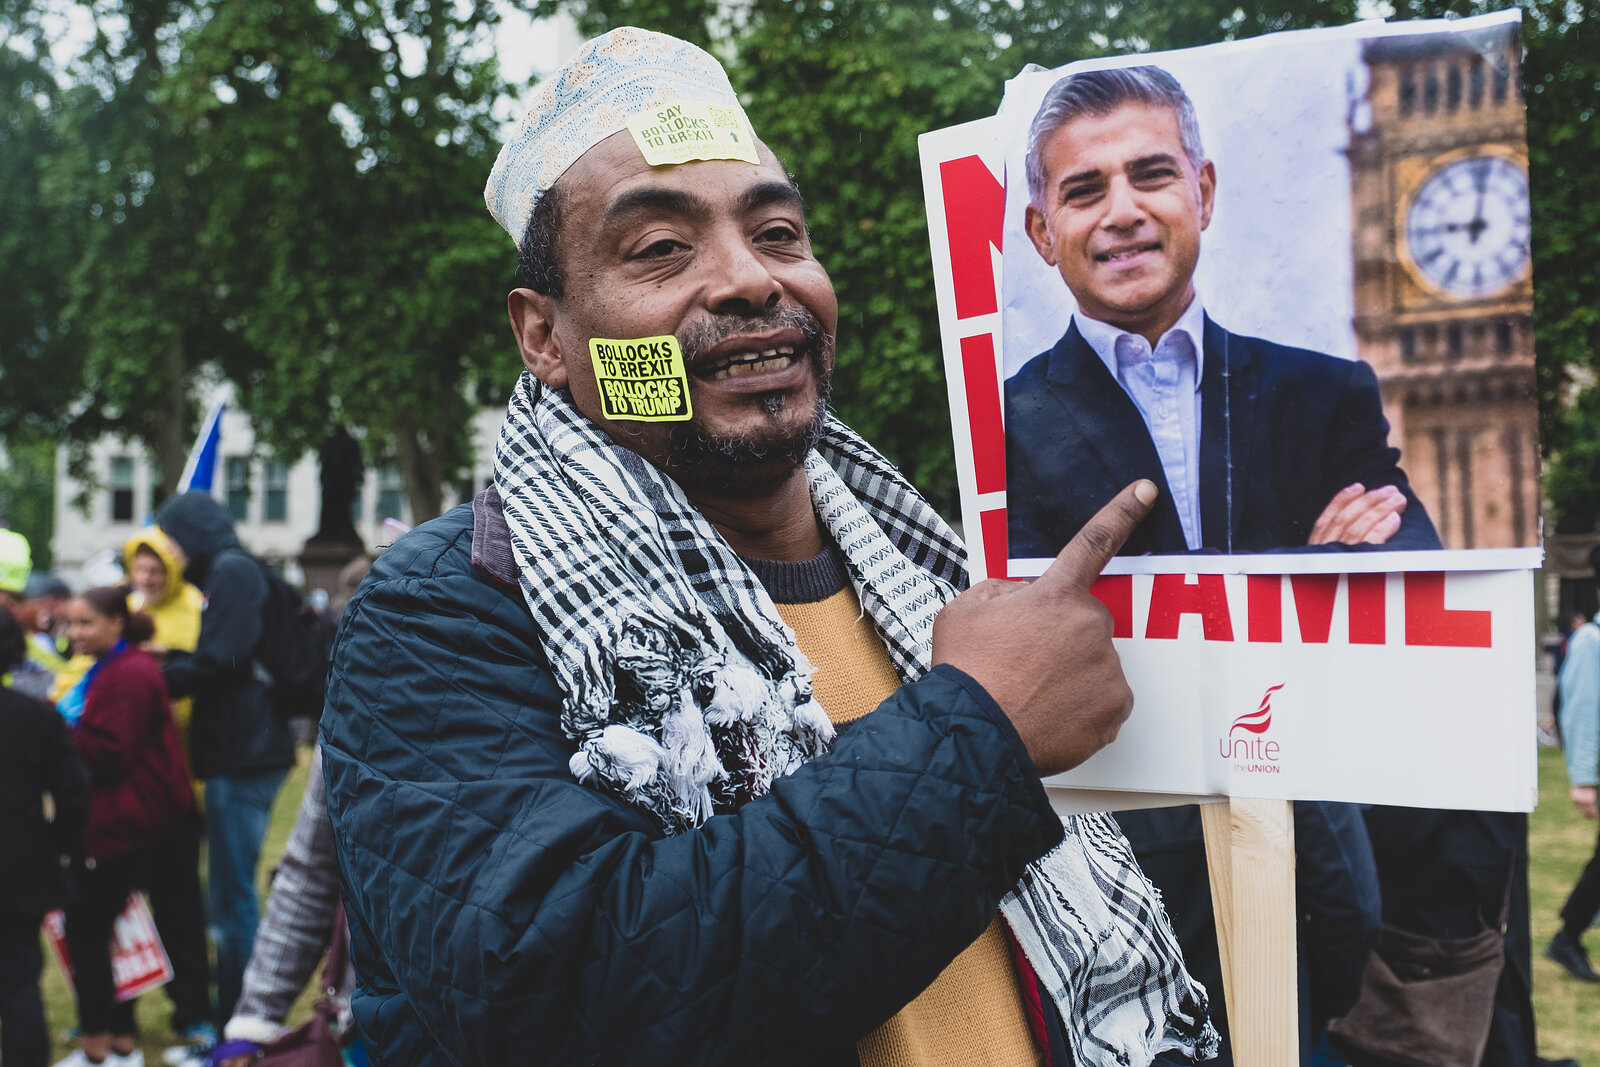 People Protest Against U.S President Donald Trump Three Day State Visit to the UK